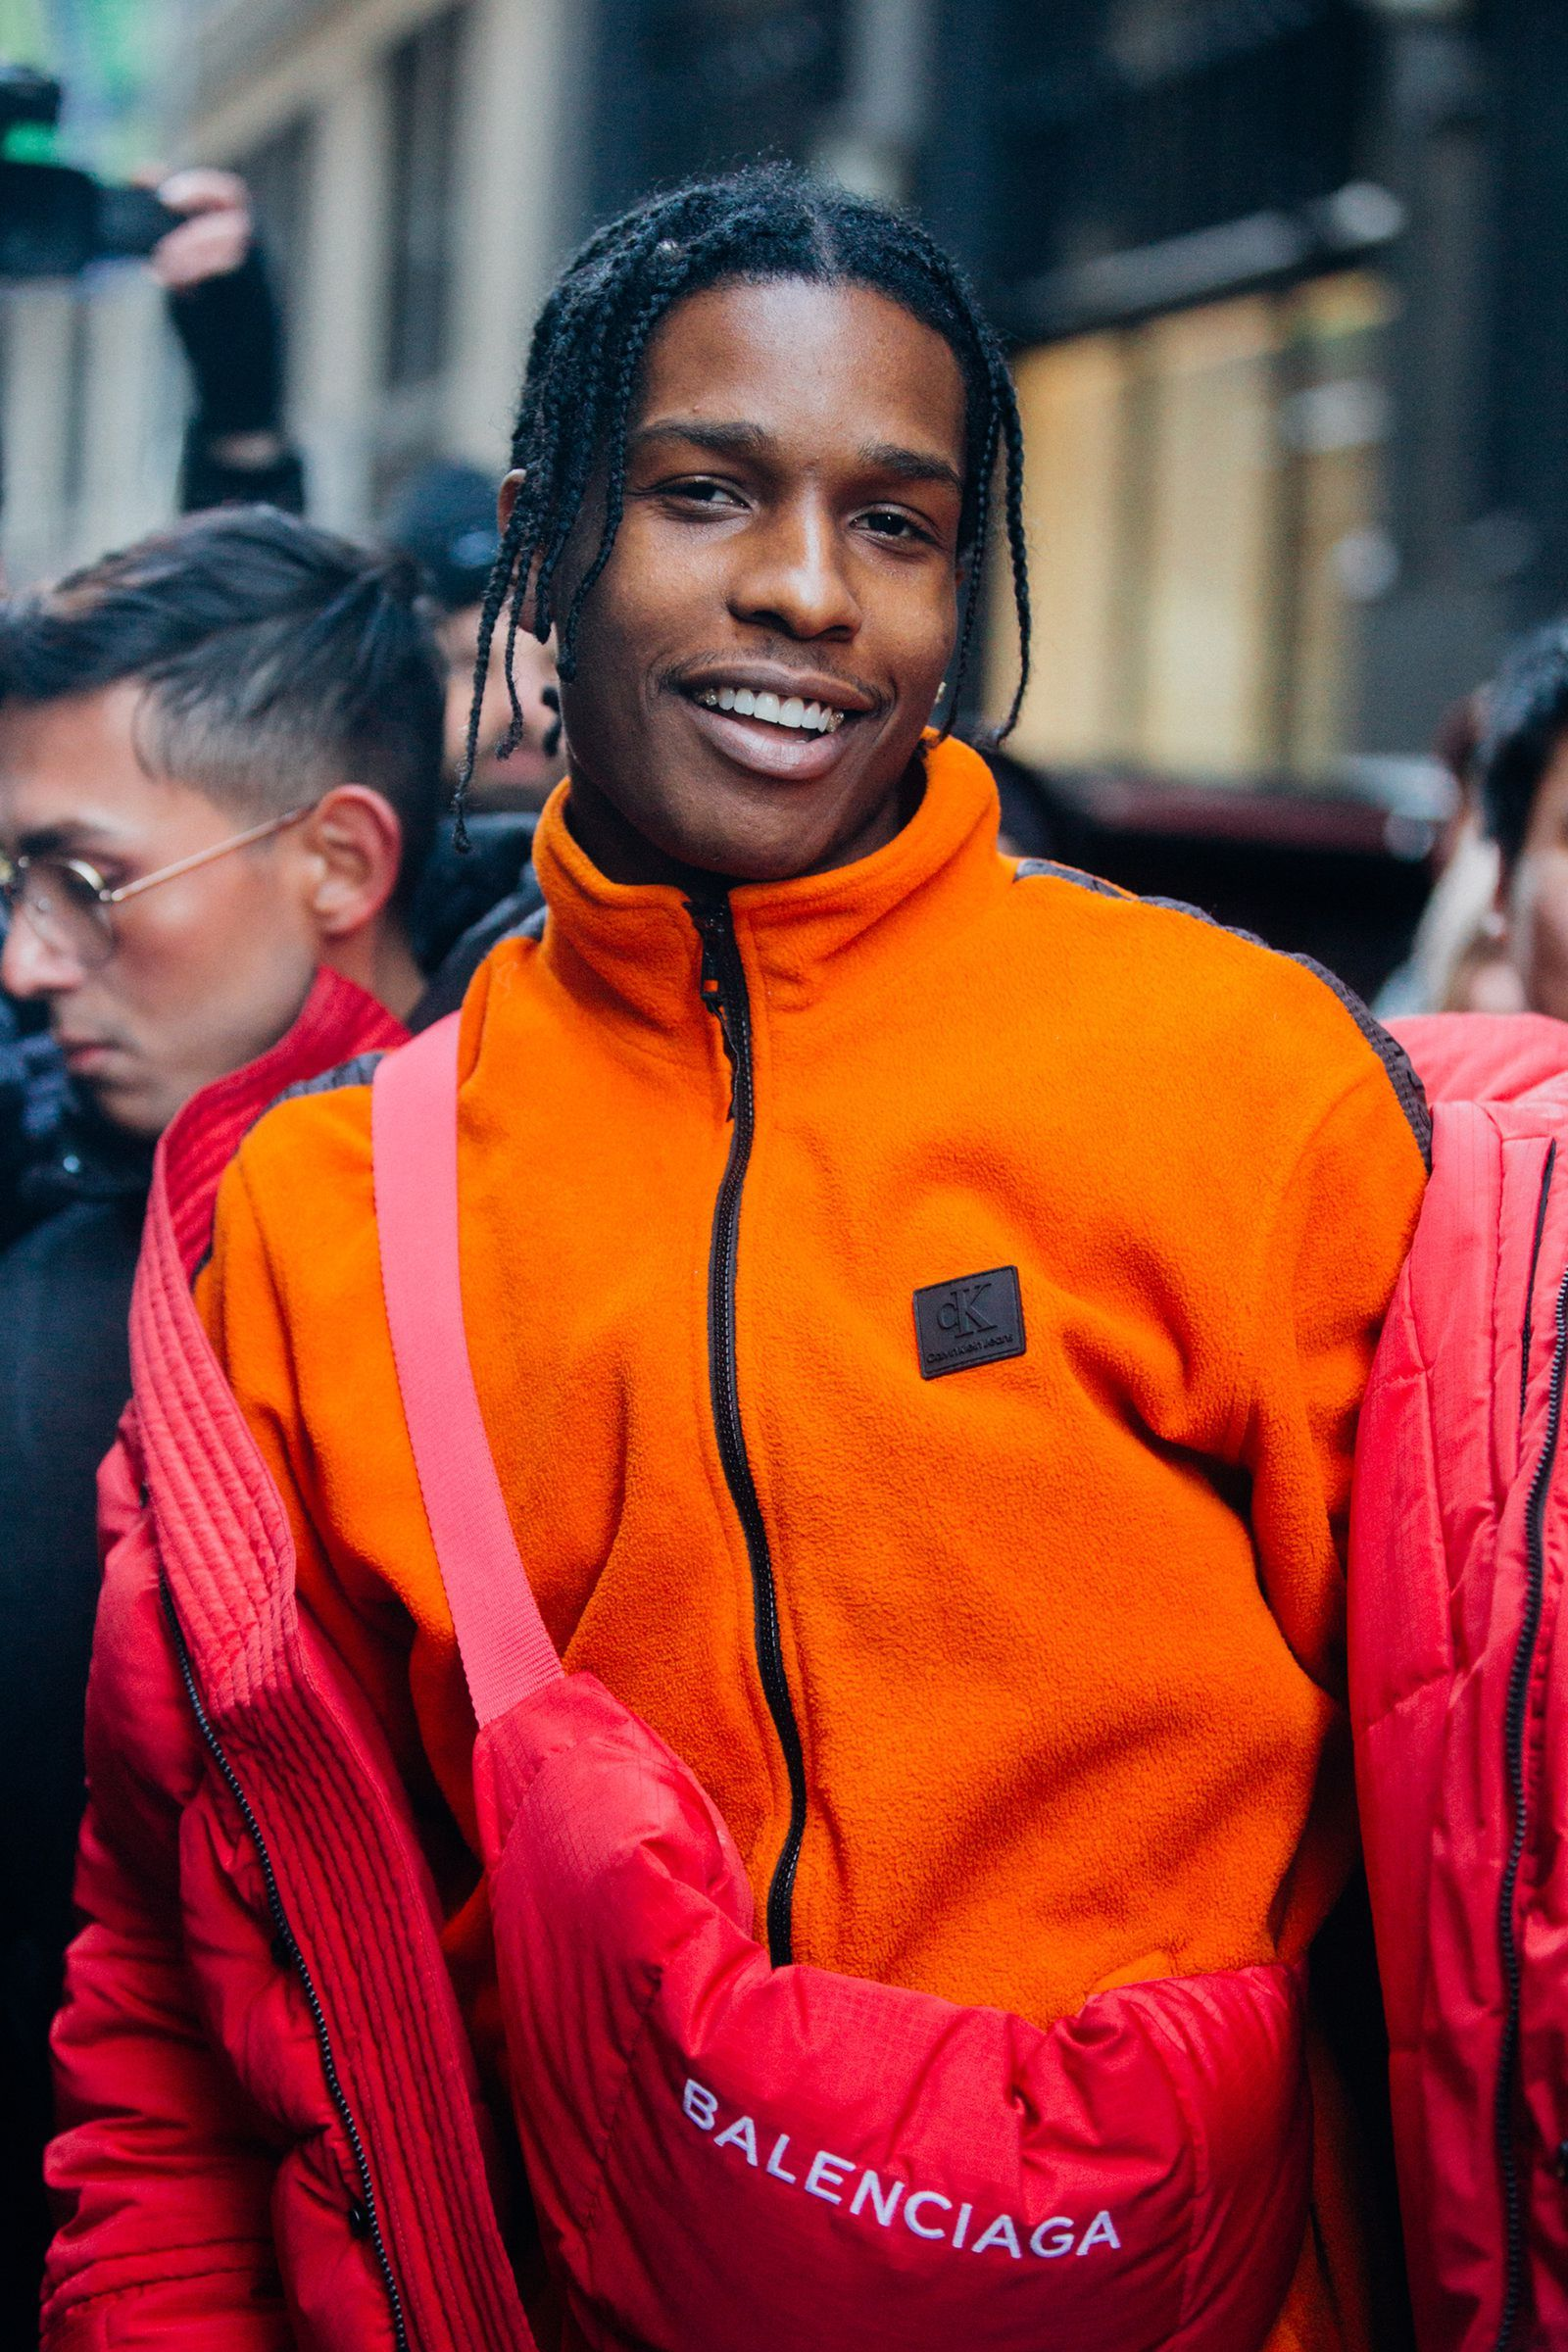 Pin on LORD FLACKO(AAP ROCKY)